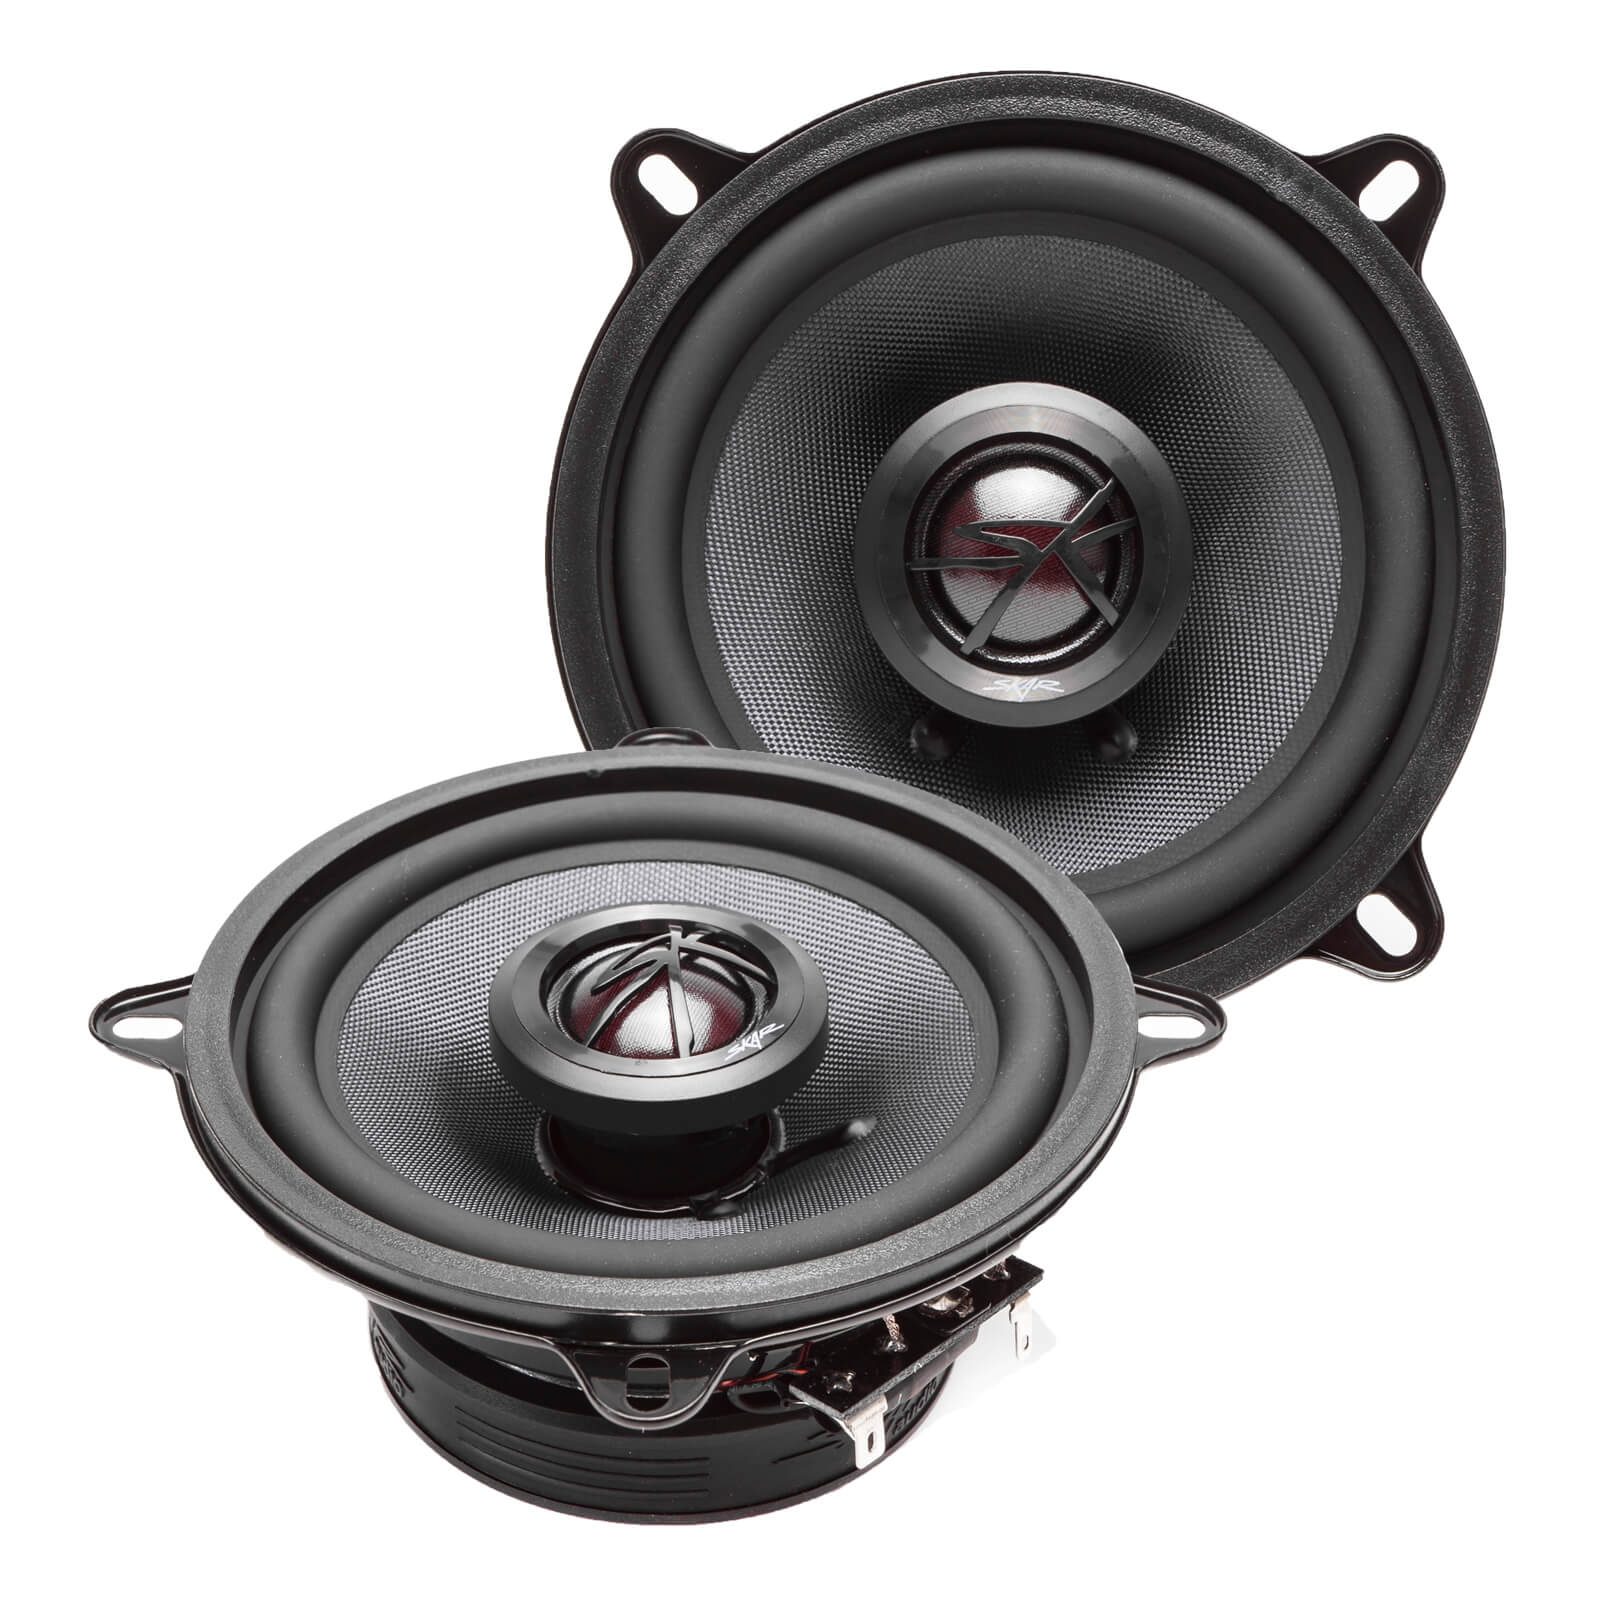 Skar Audio TX525 5.25-inch 160 Watt Max Power Coaxial Car Speakers - Angle View